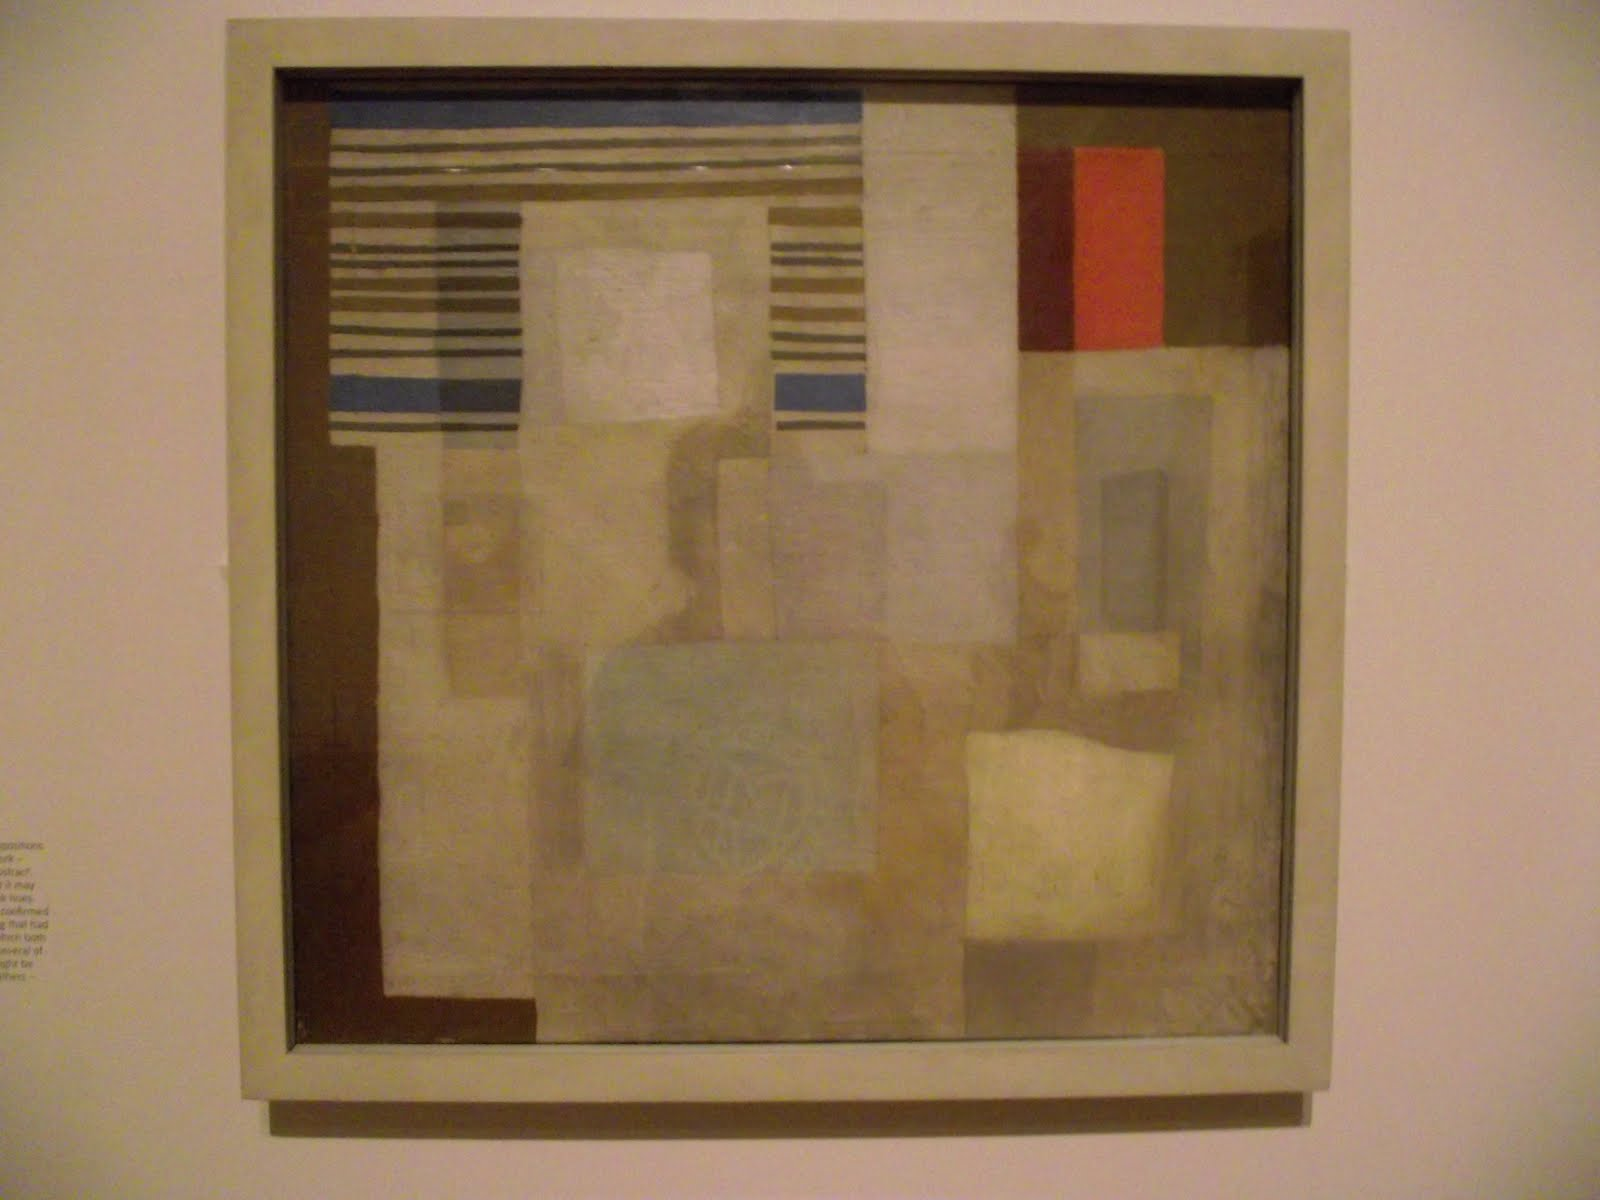 Fred Spratt The Tate Britain Picasso In Mito Fantasy Selfie A77 Ben Nicholson